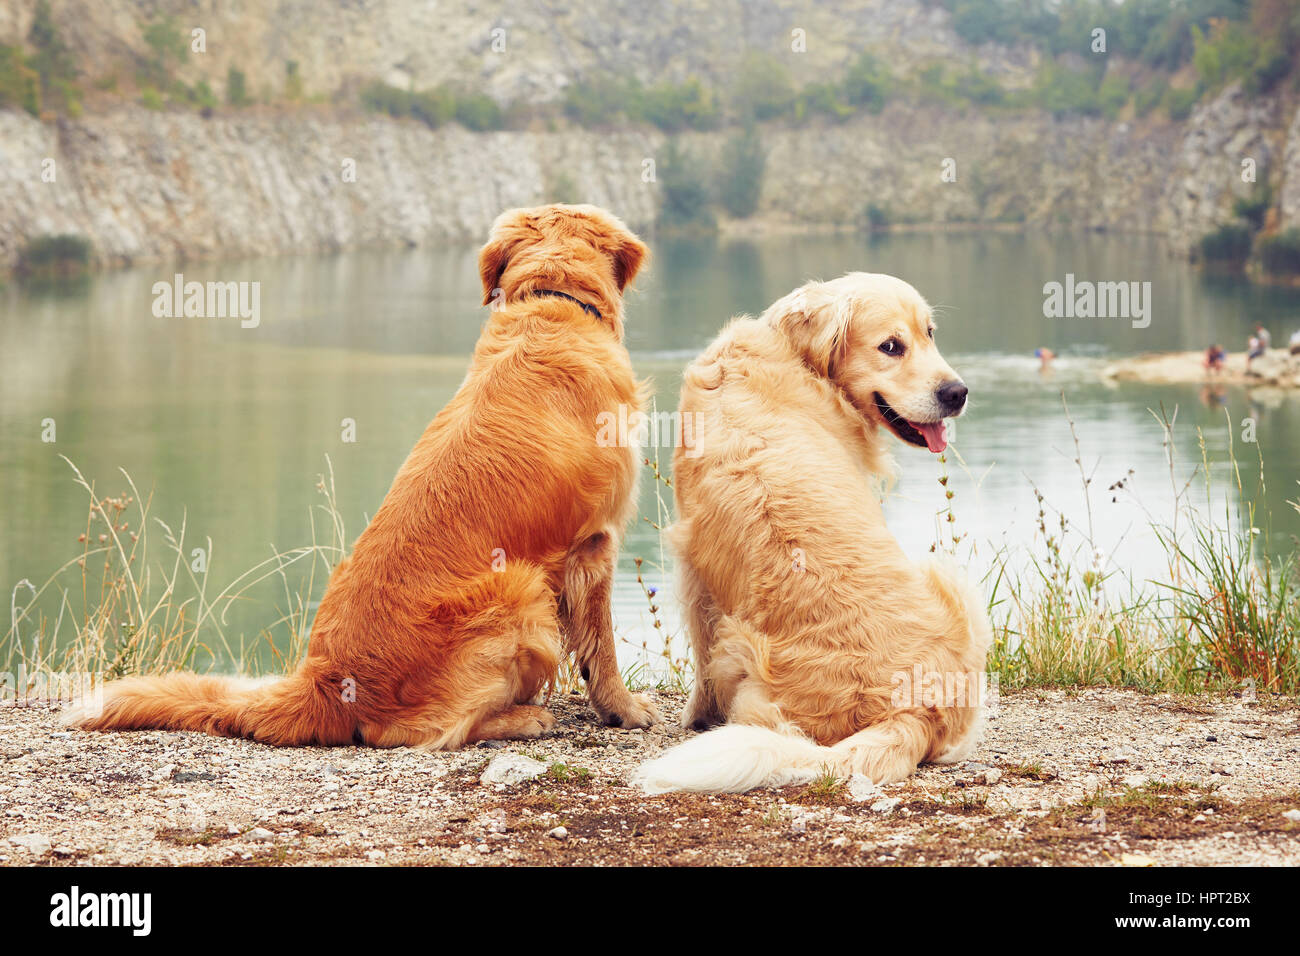 Lake for swimming. Two golden retriever dogs in old stone quarry. - Stock Image